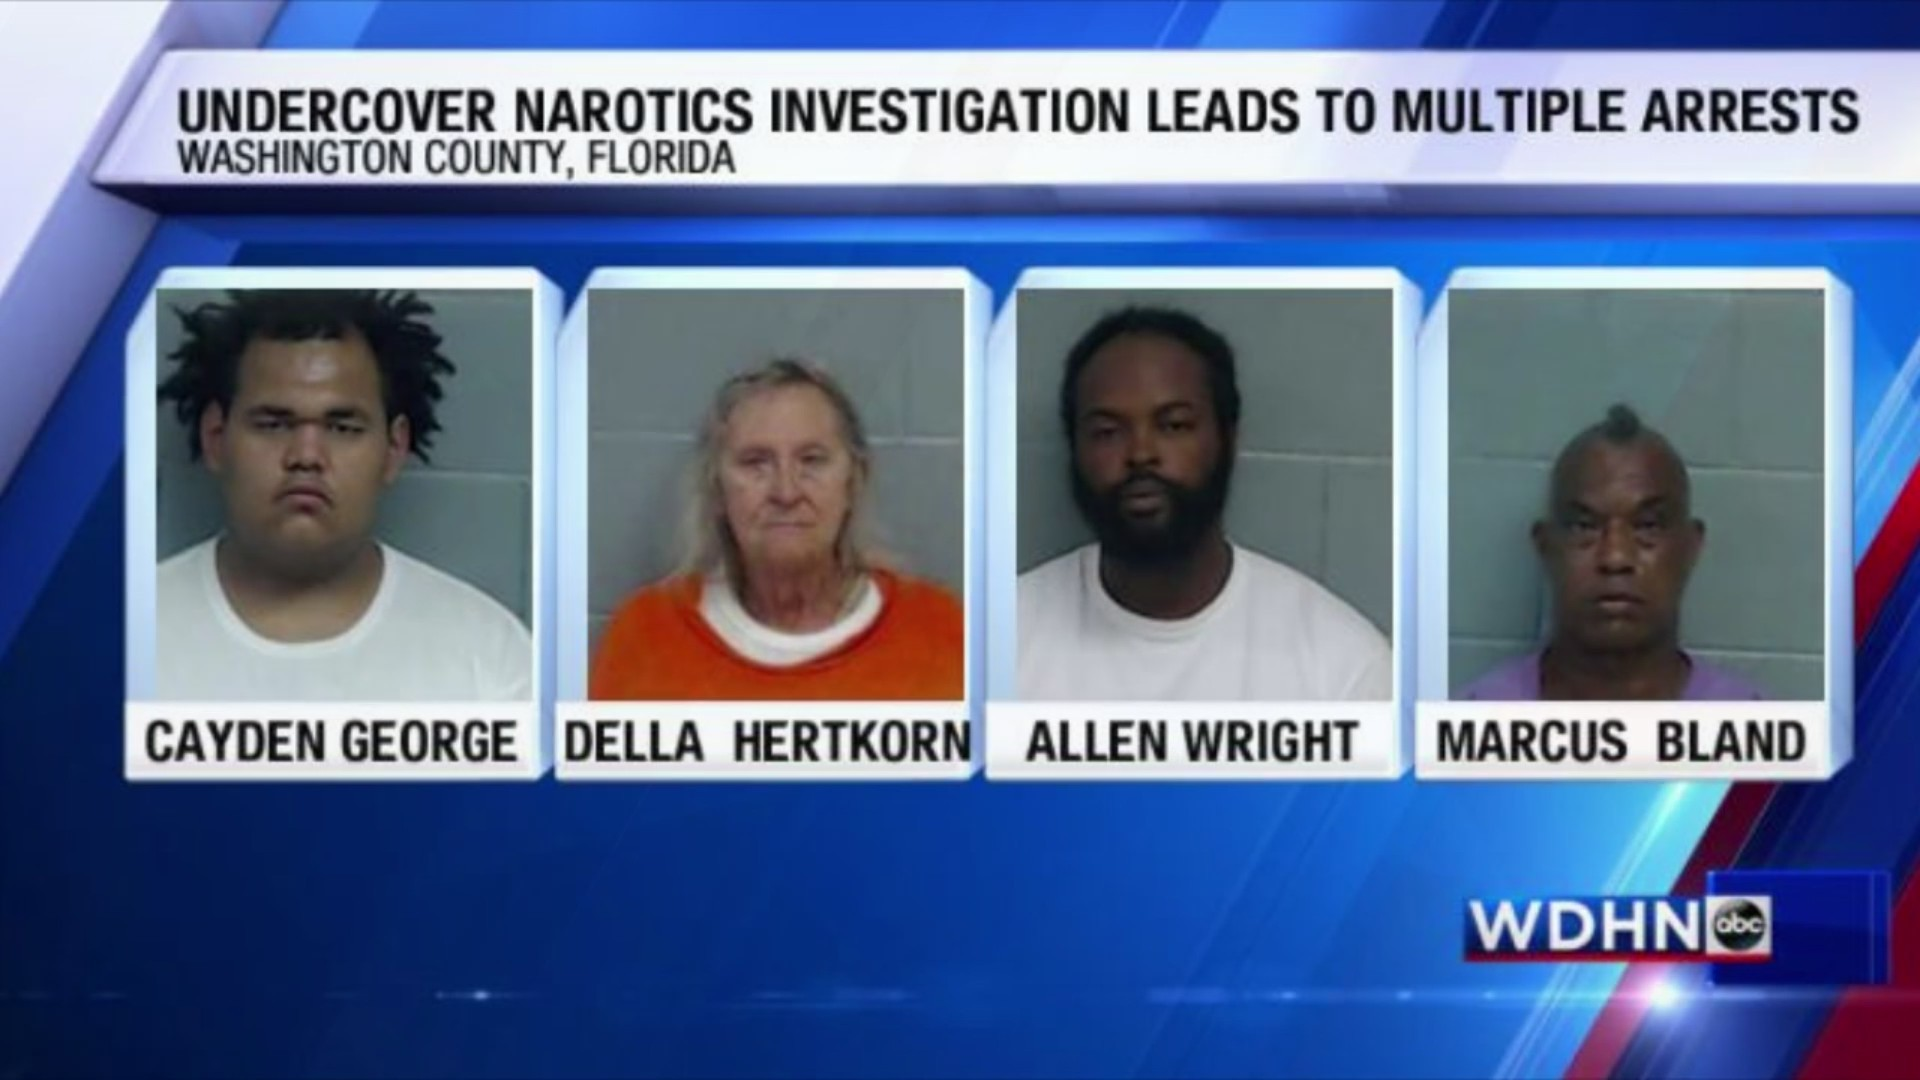 Undercover Narcotics Investigation Leads to Multiple Arrests